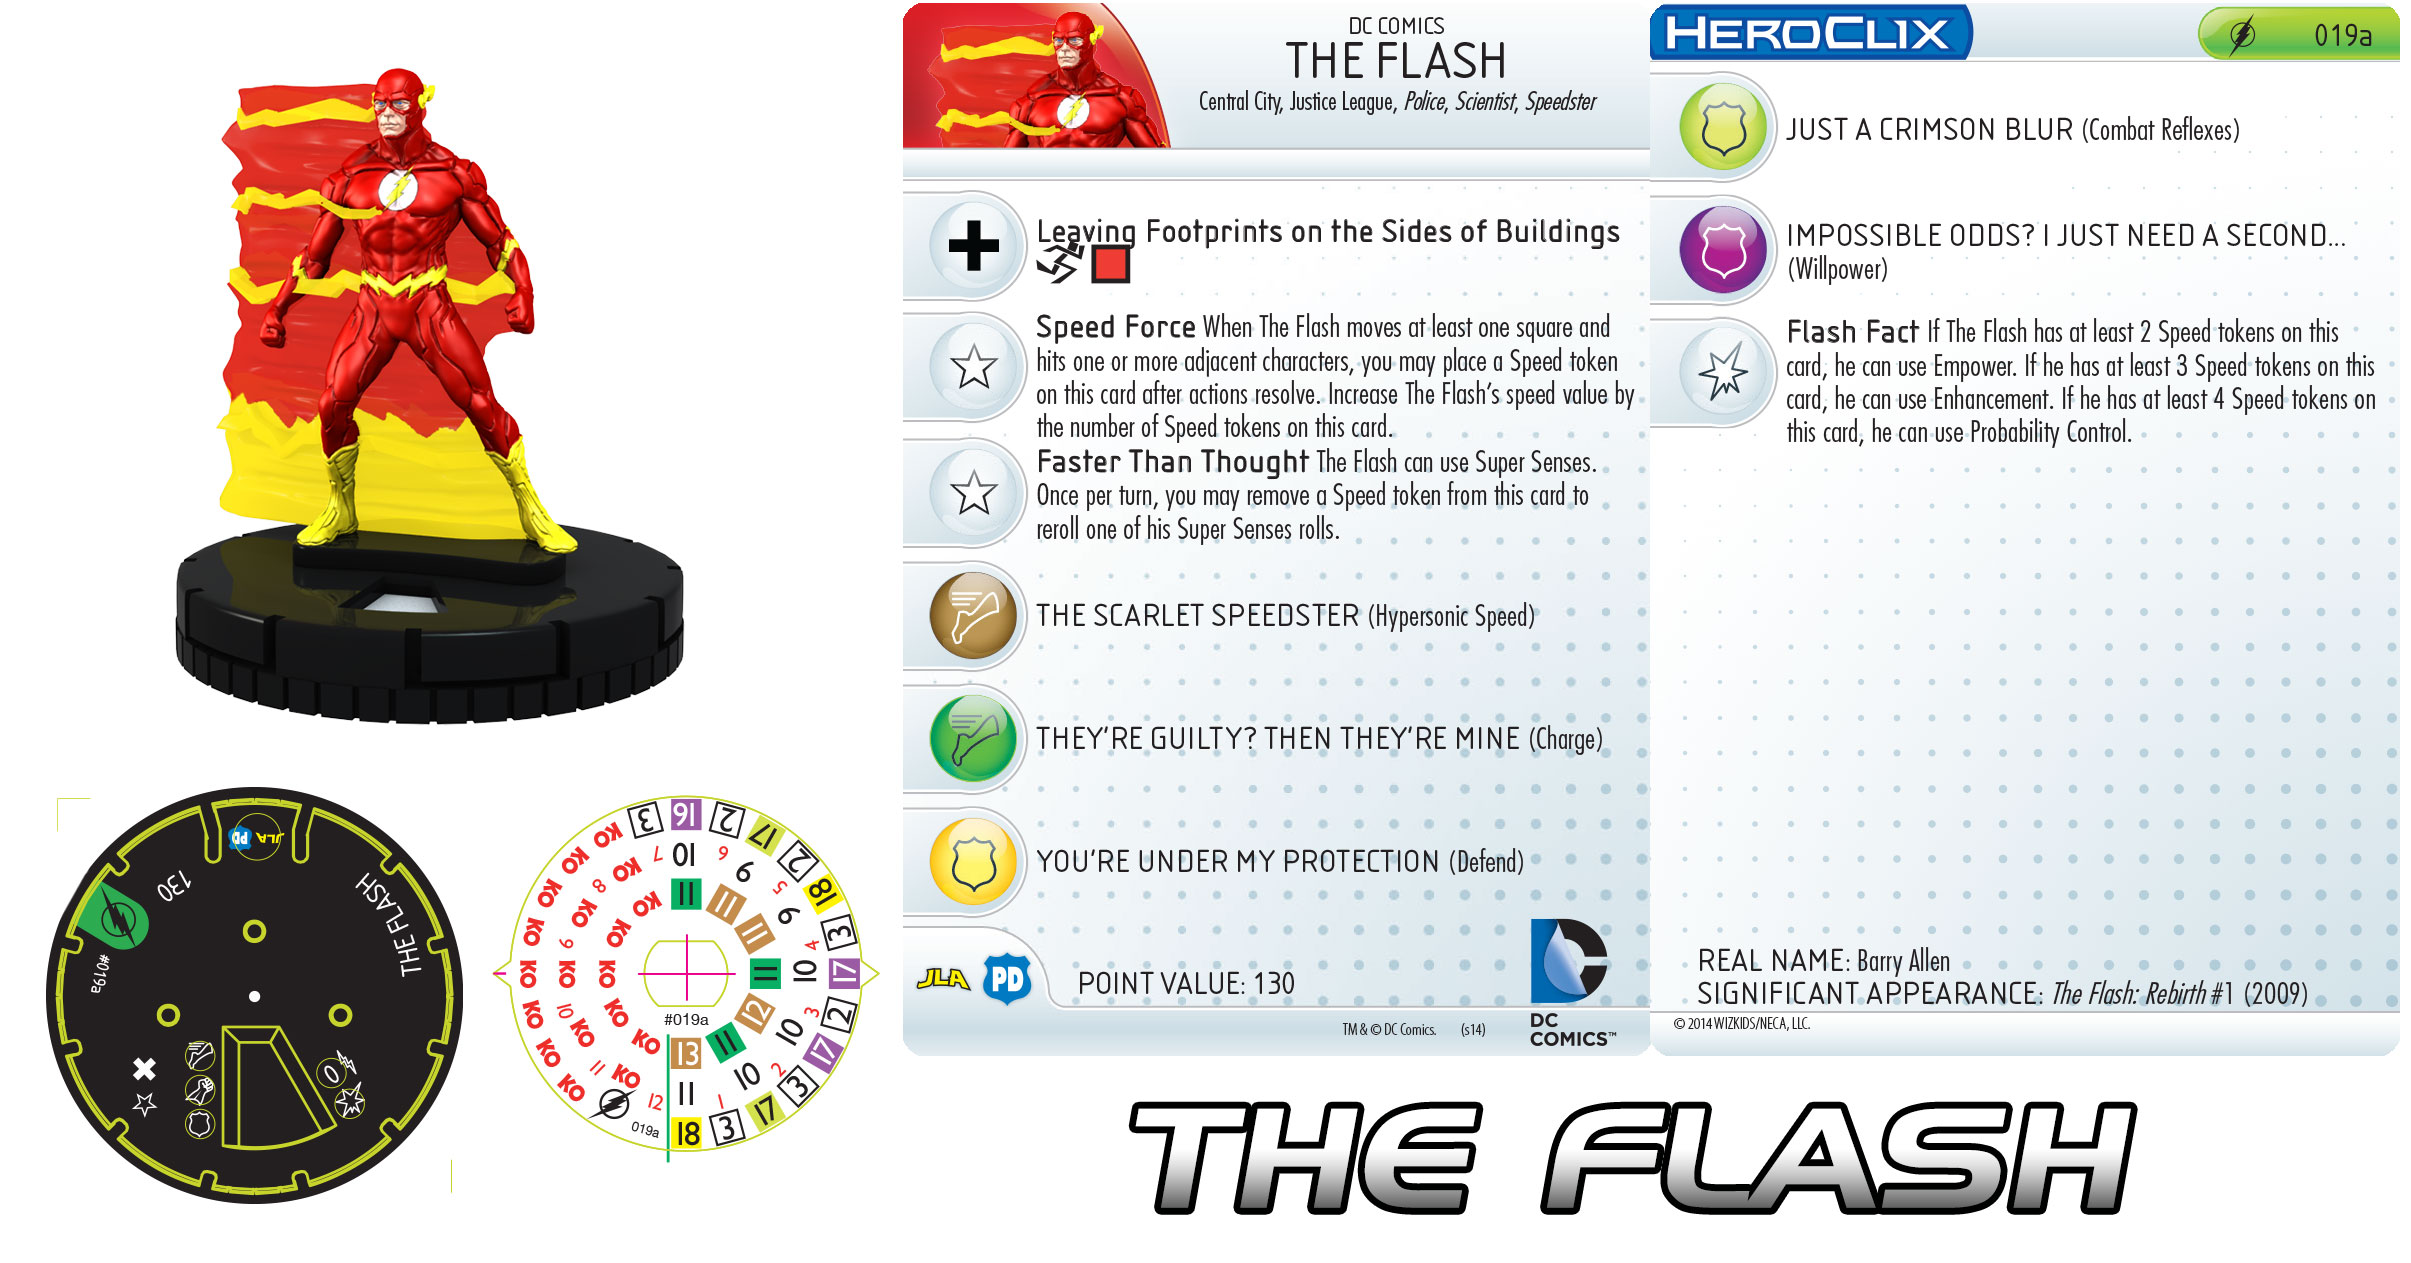 019a-the-flash